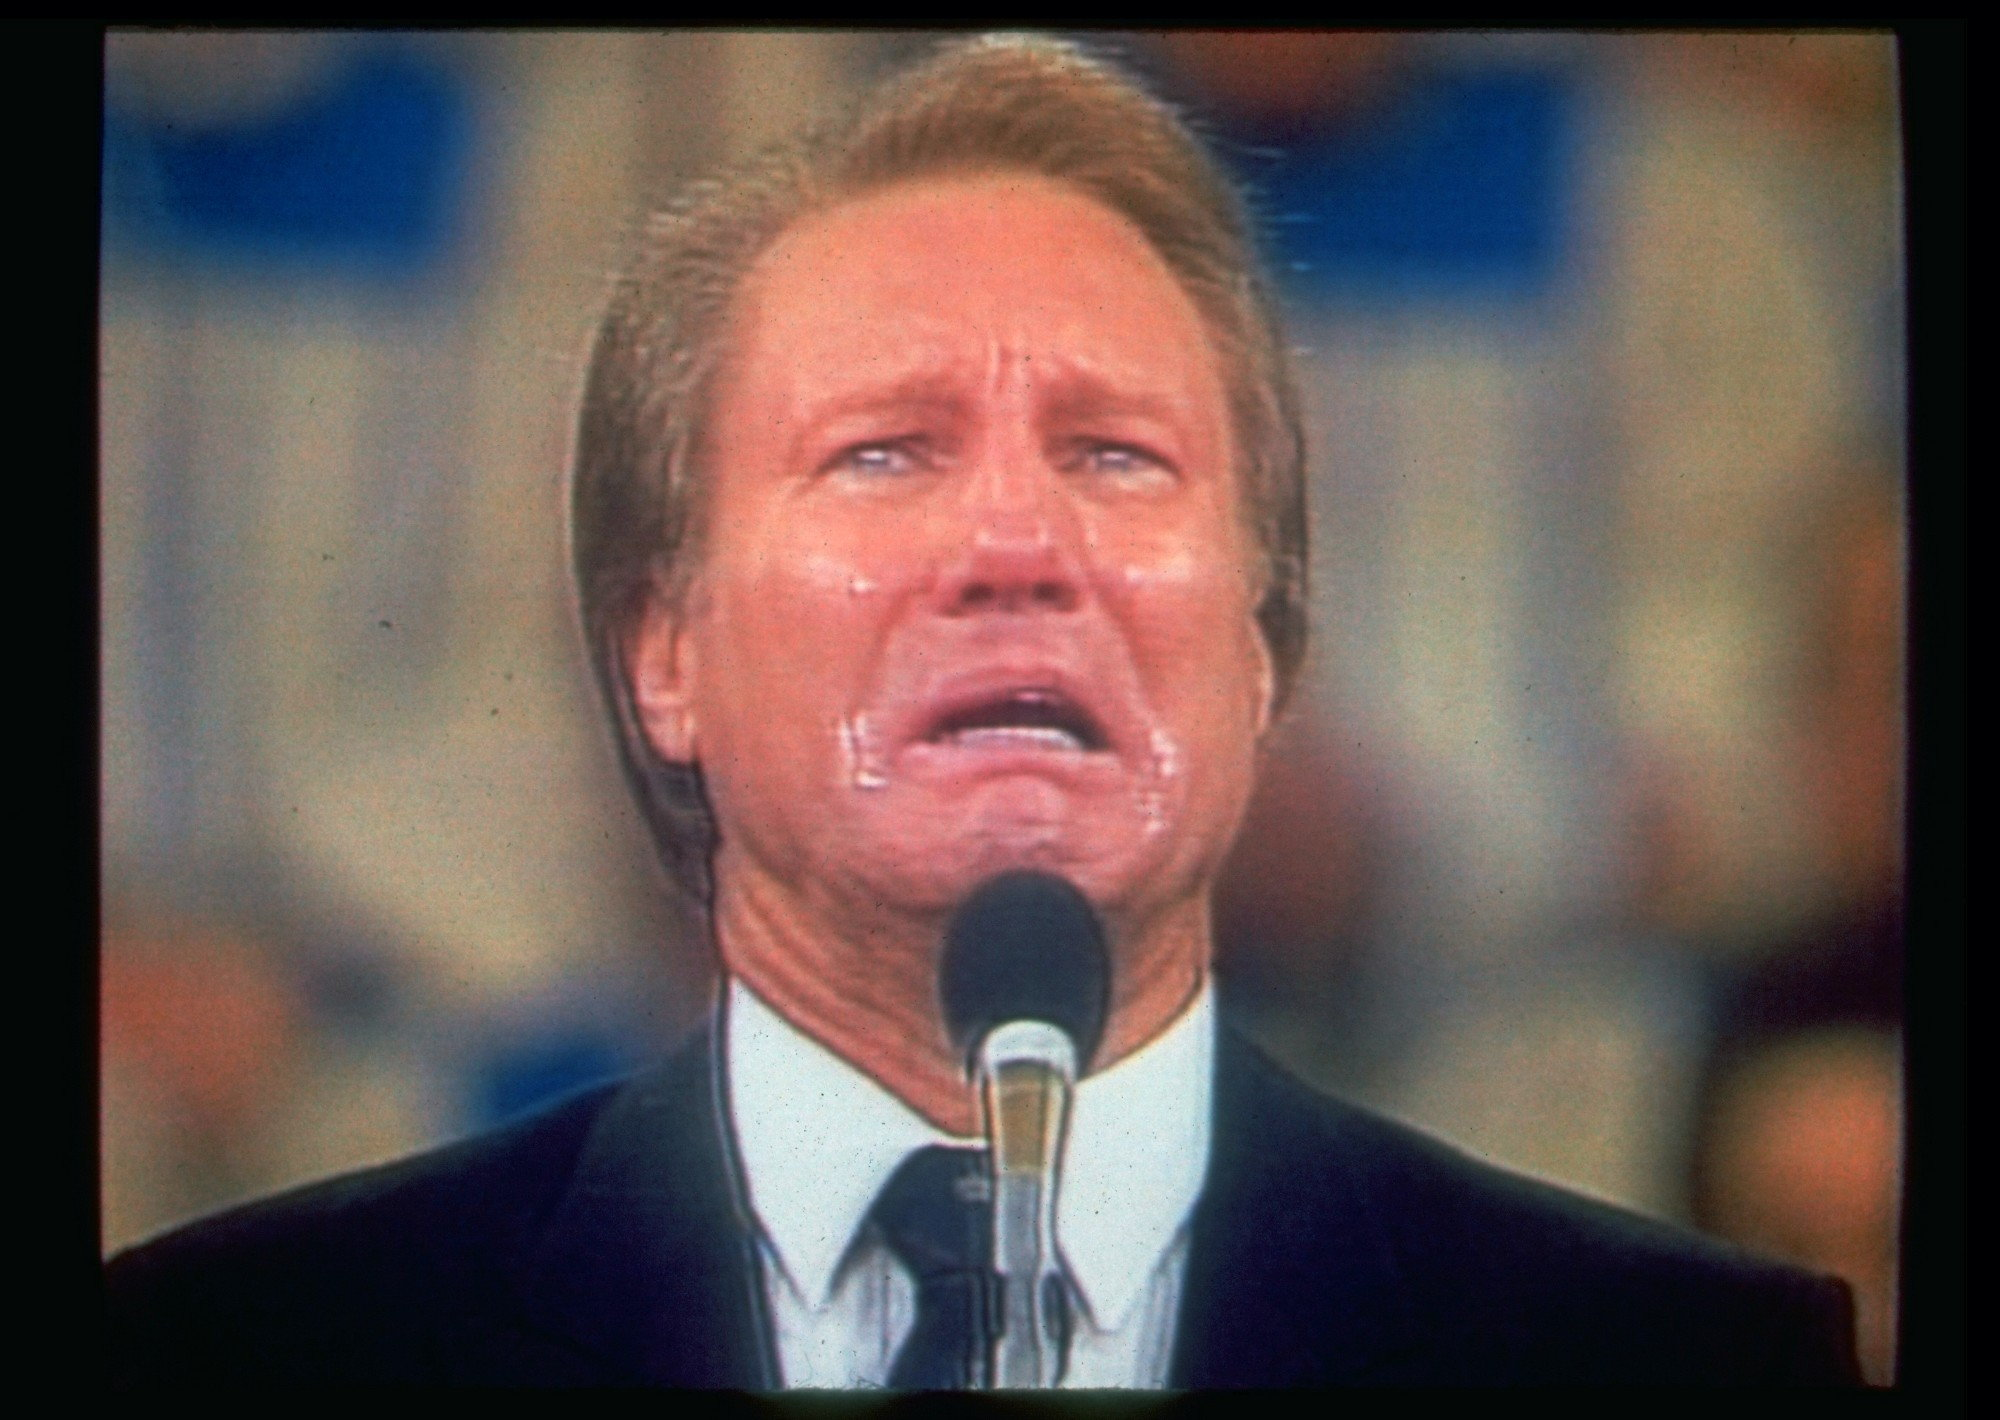 Jimmy Swaggart Net Worth 2019 Salary House Cars Wiki - #Summer